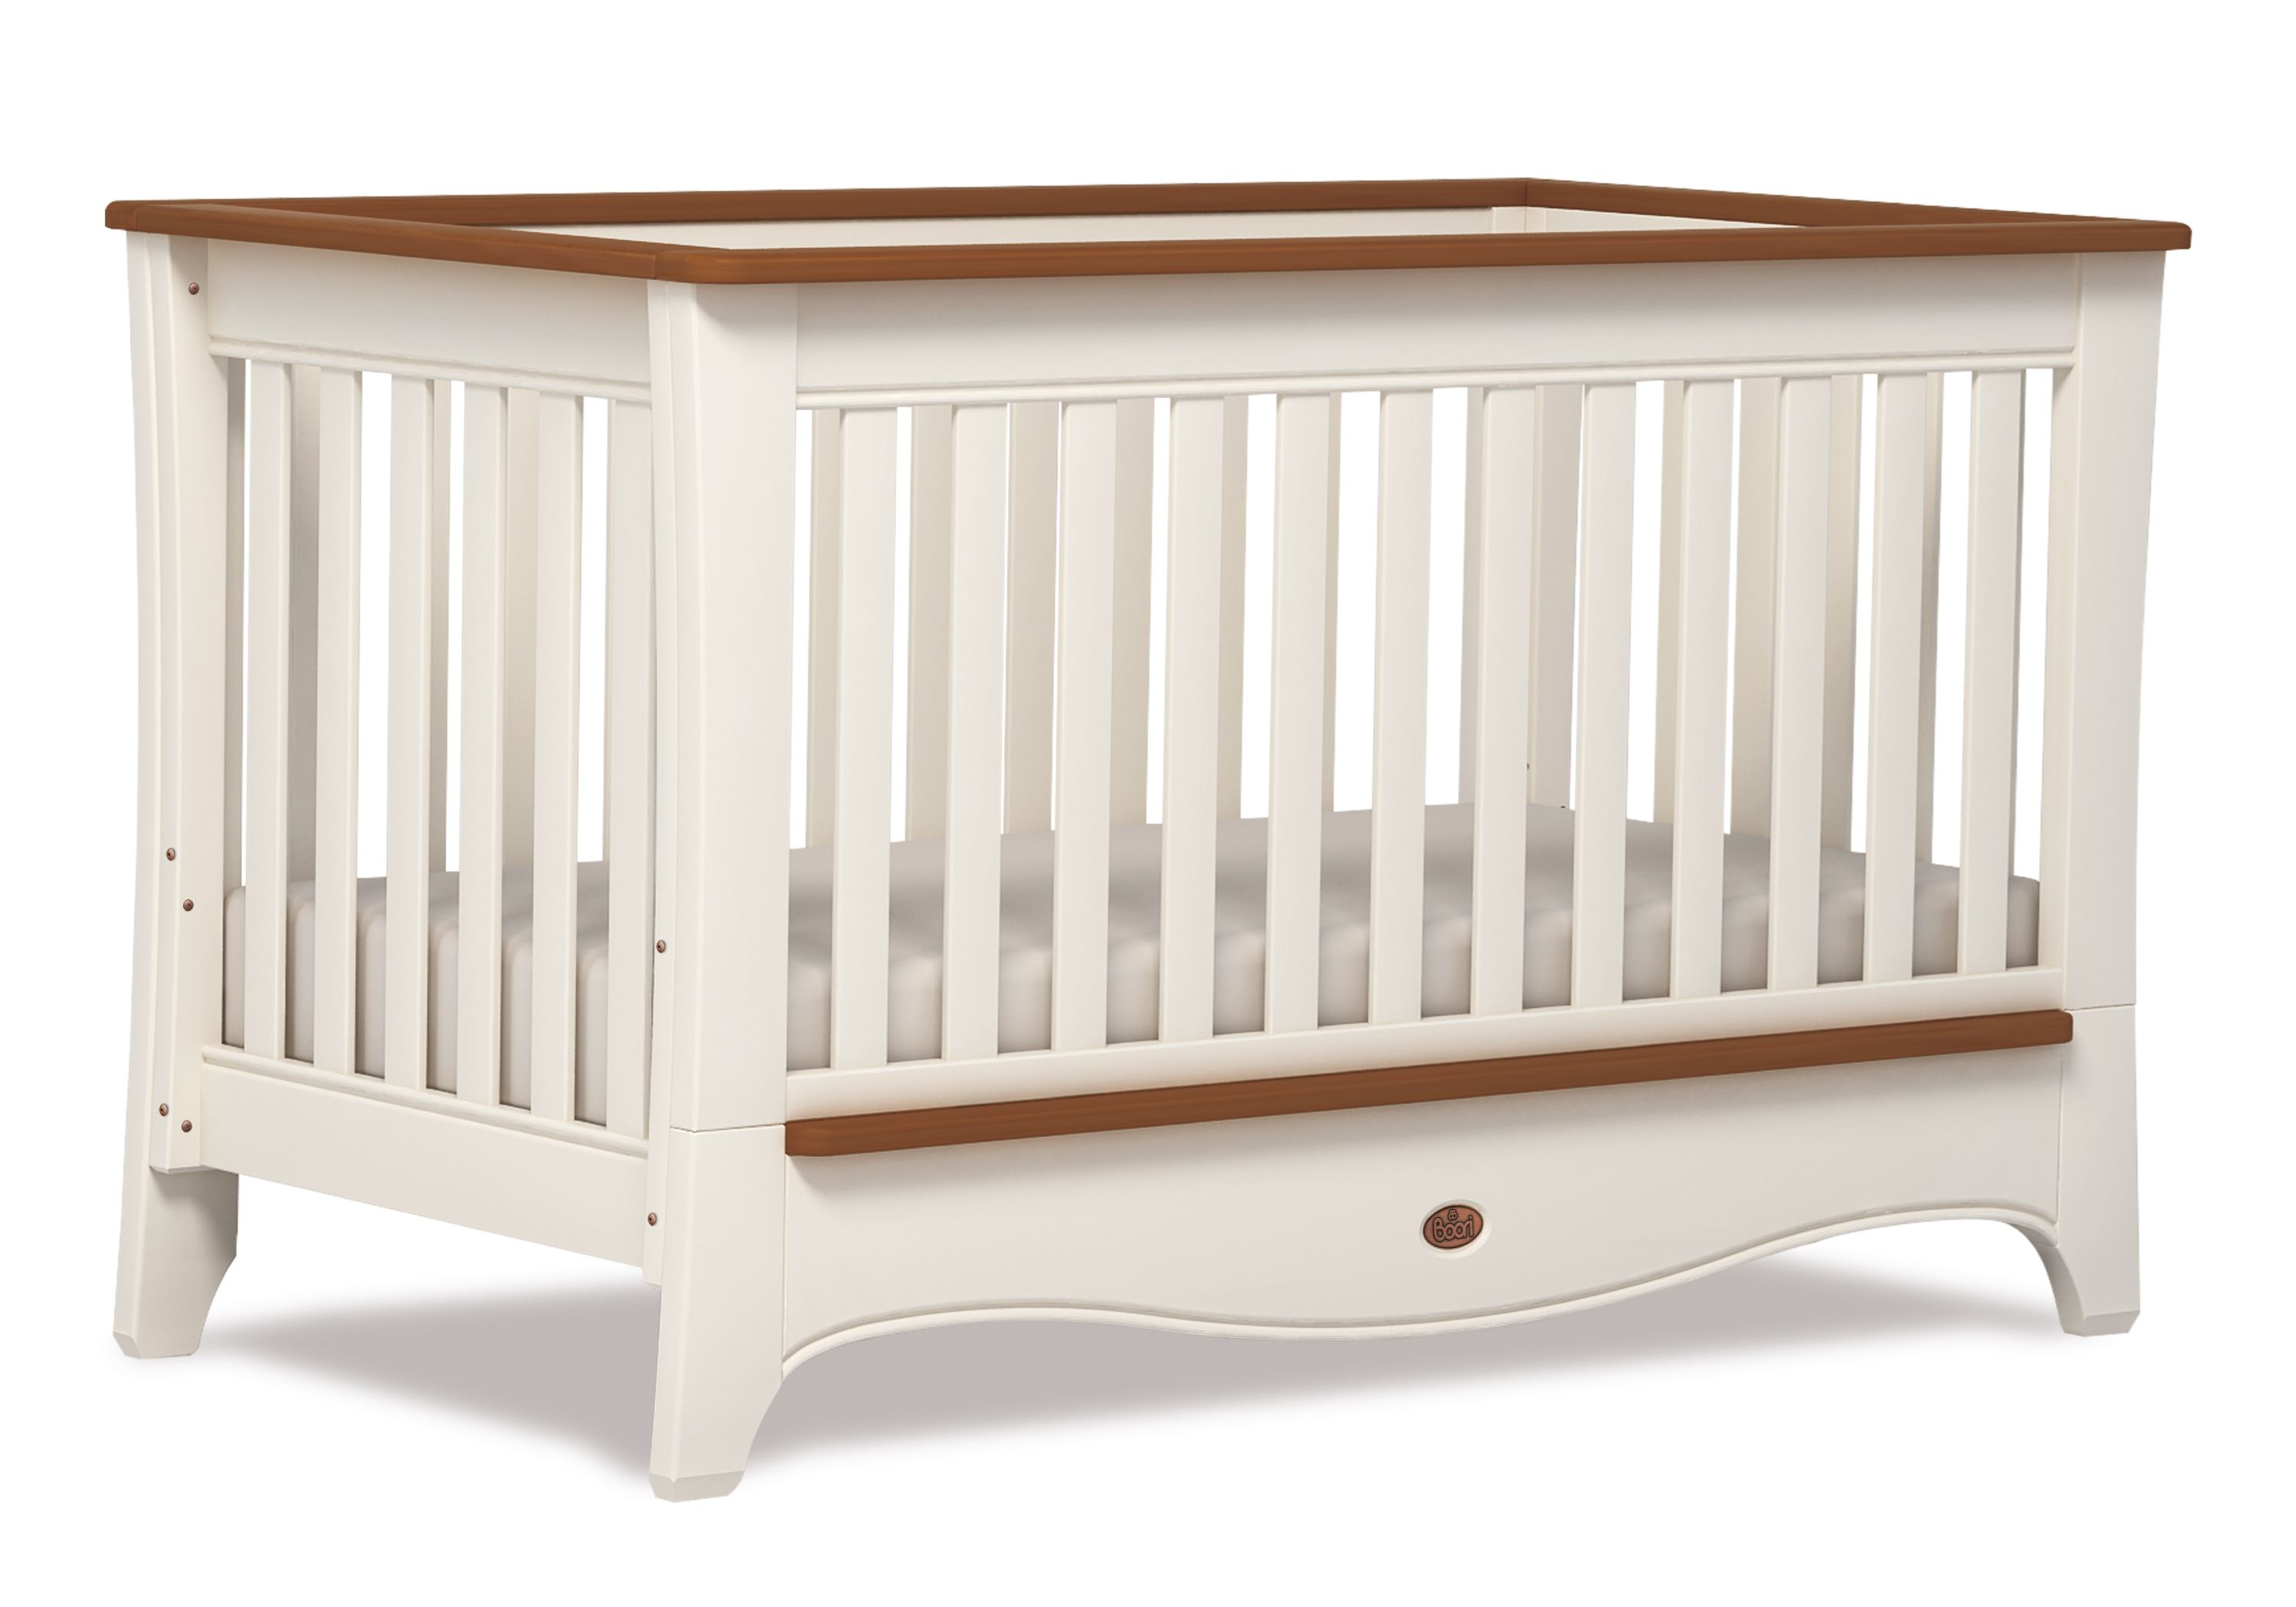 Provence Convertible Plus Cot bed - Ivory and Honey